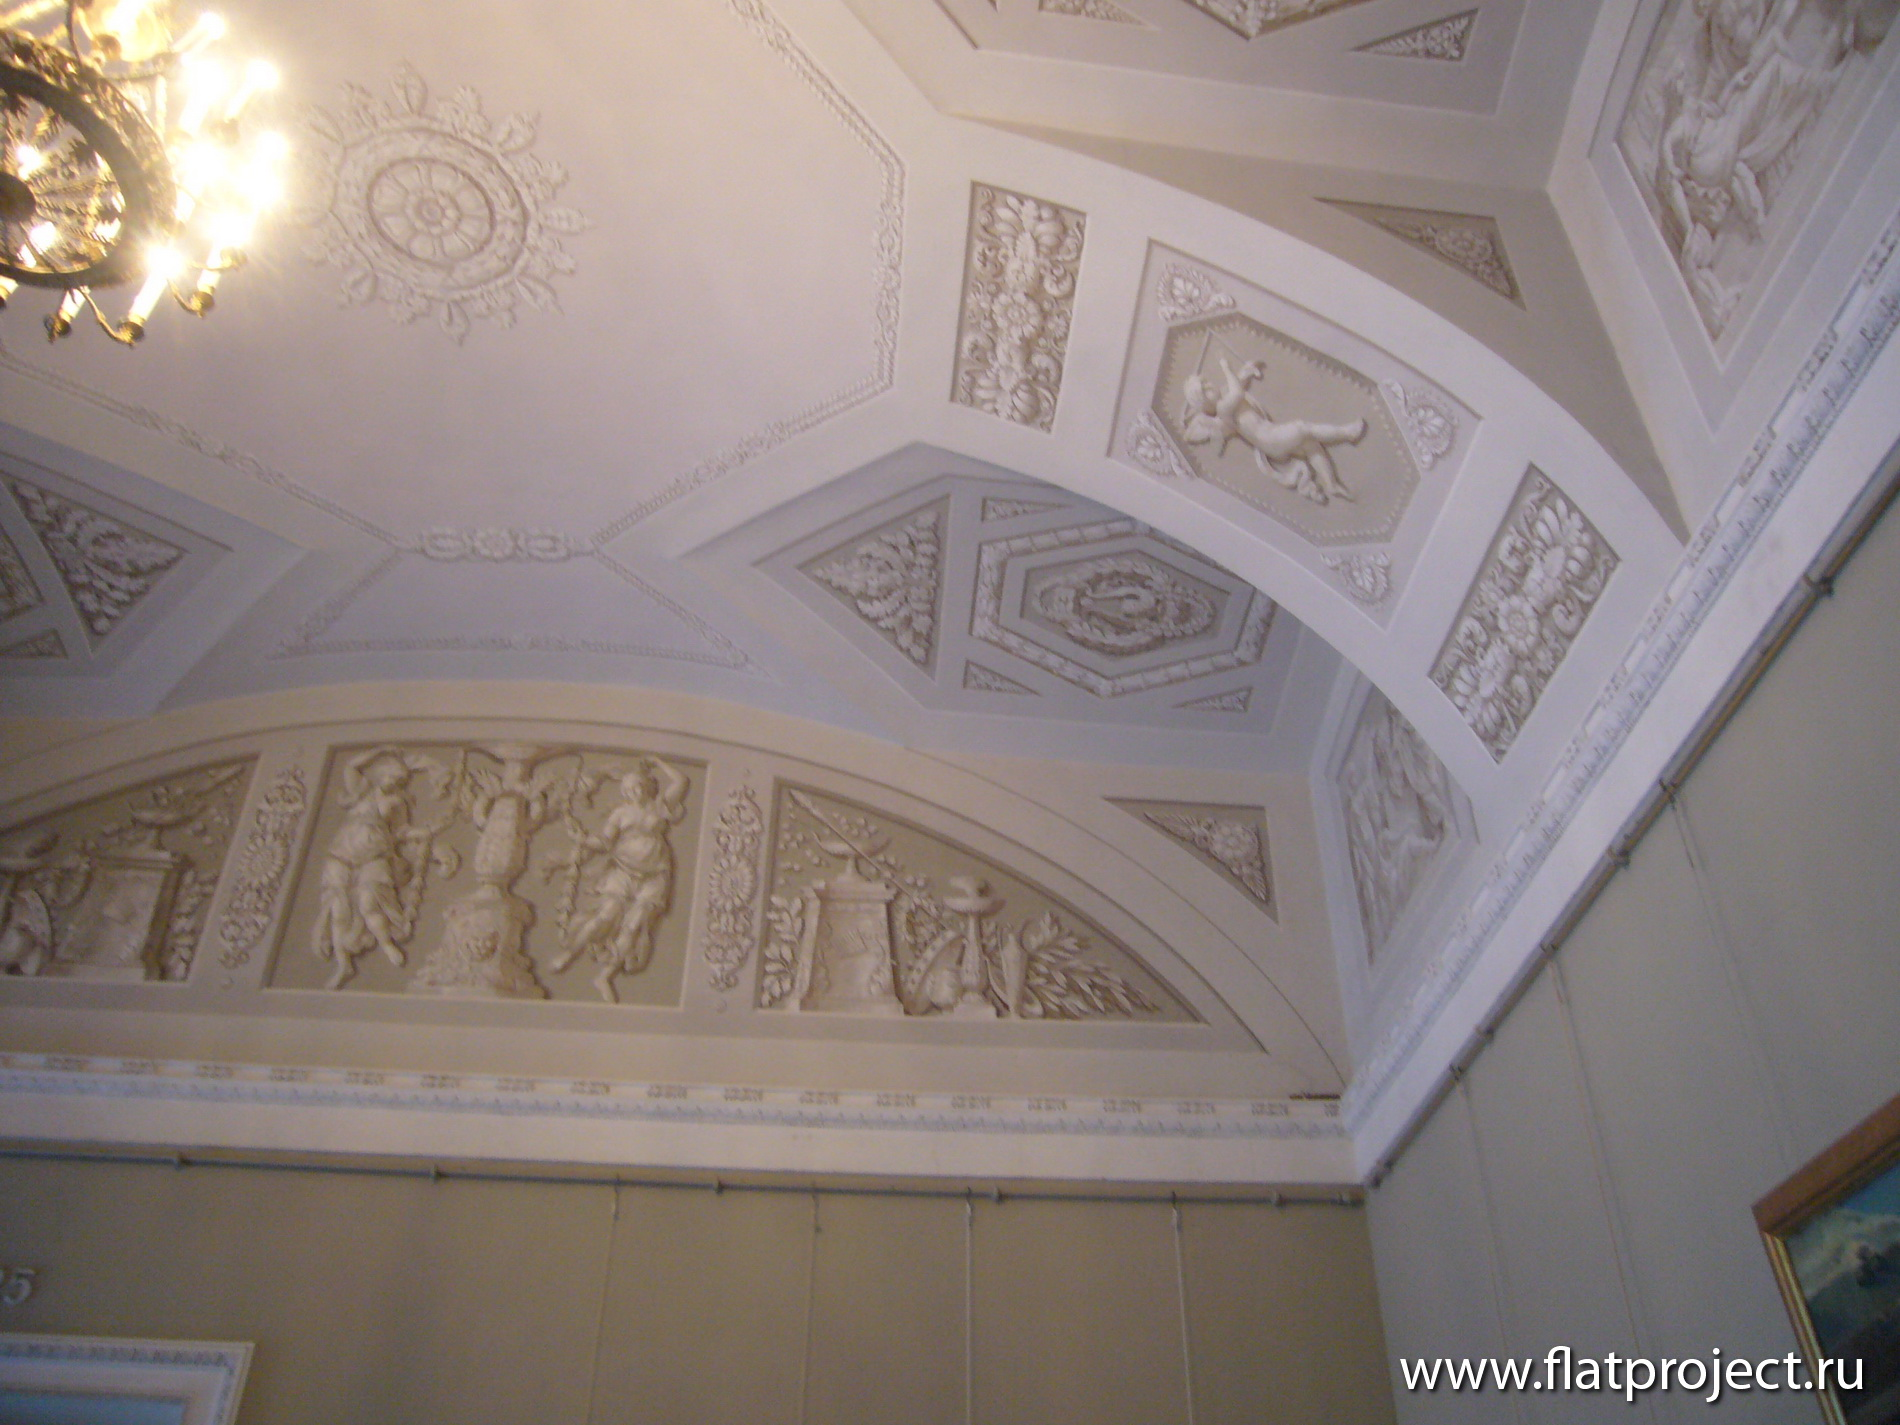 The State Russian museum interiors – photo 130